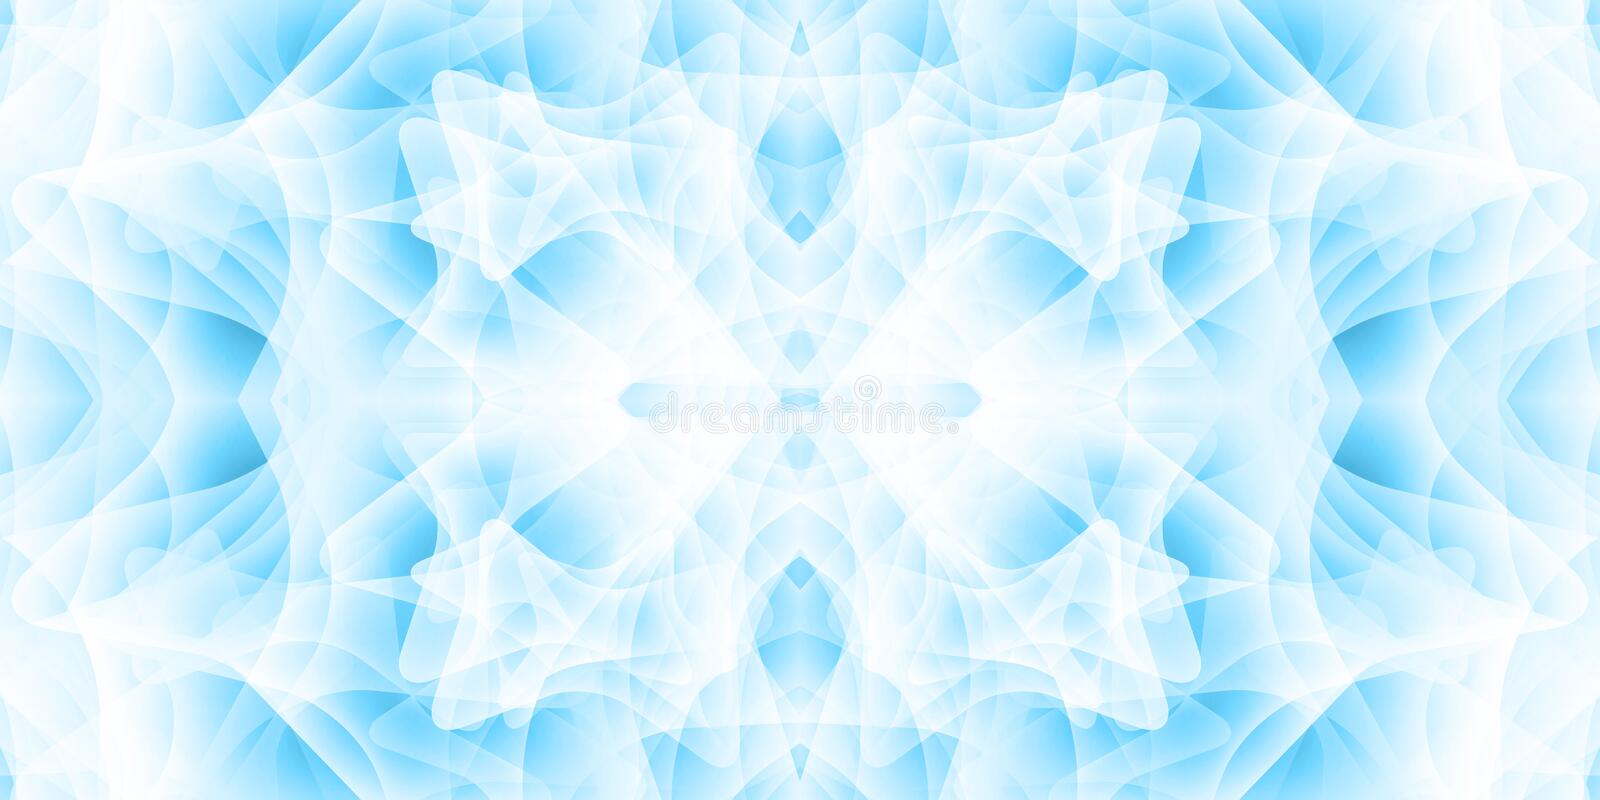 Abstract background with many overlapping shapes. Shades of blue. Mystical aura royalty free illustration